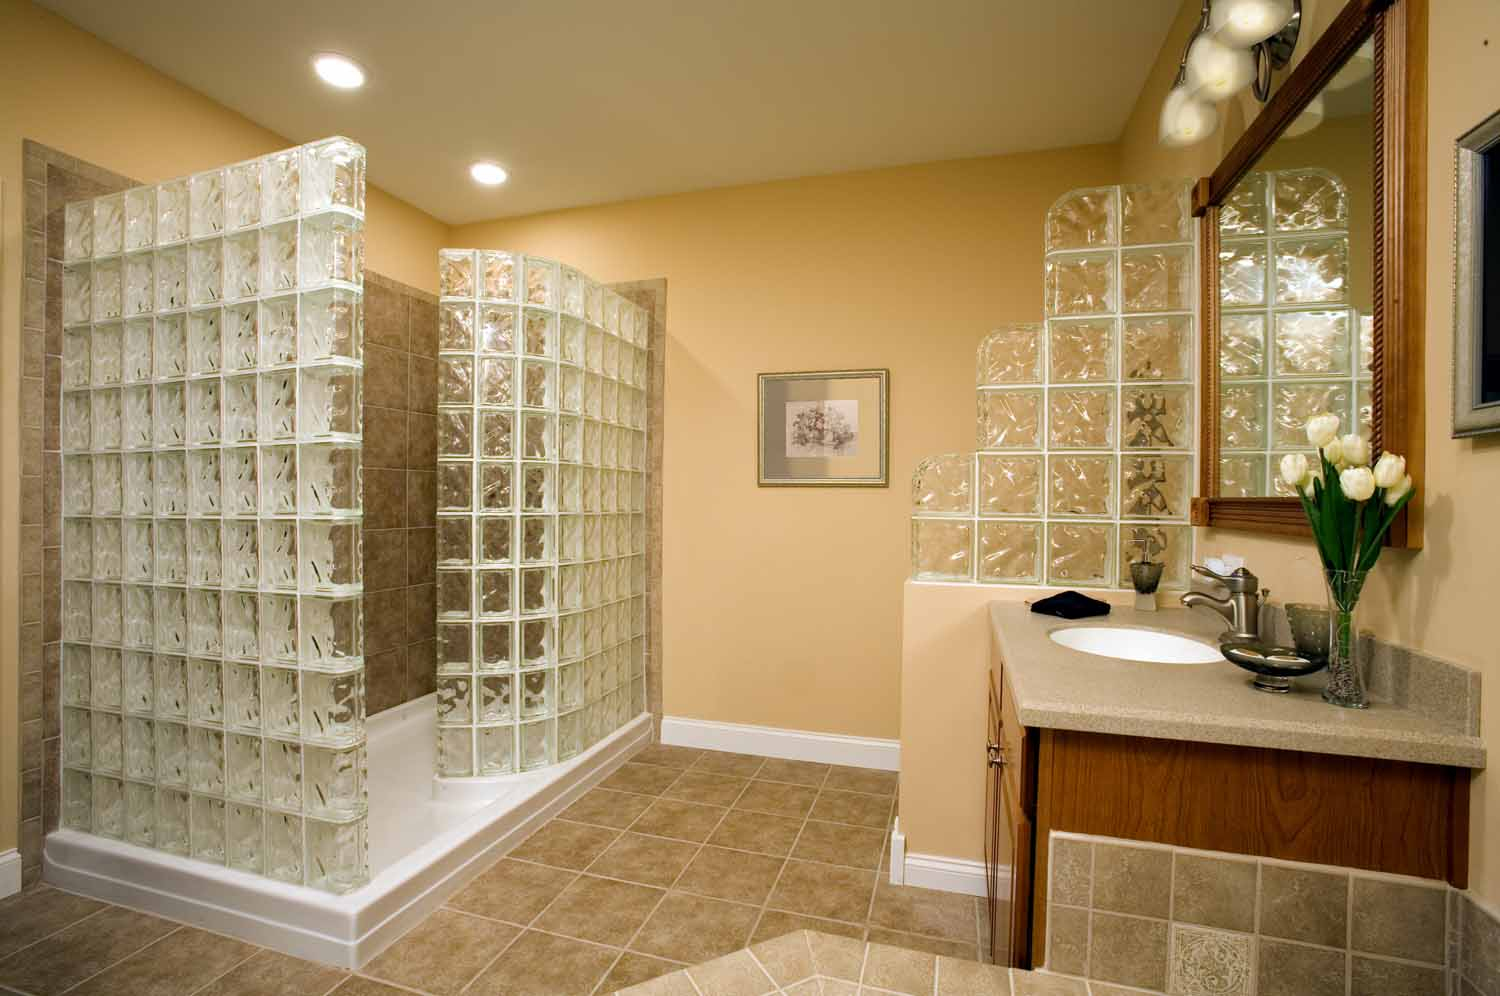 bathroom redo ideas - large and beautiful photos. photo to select